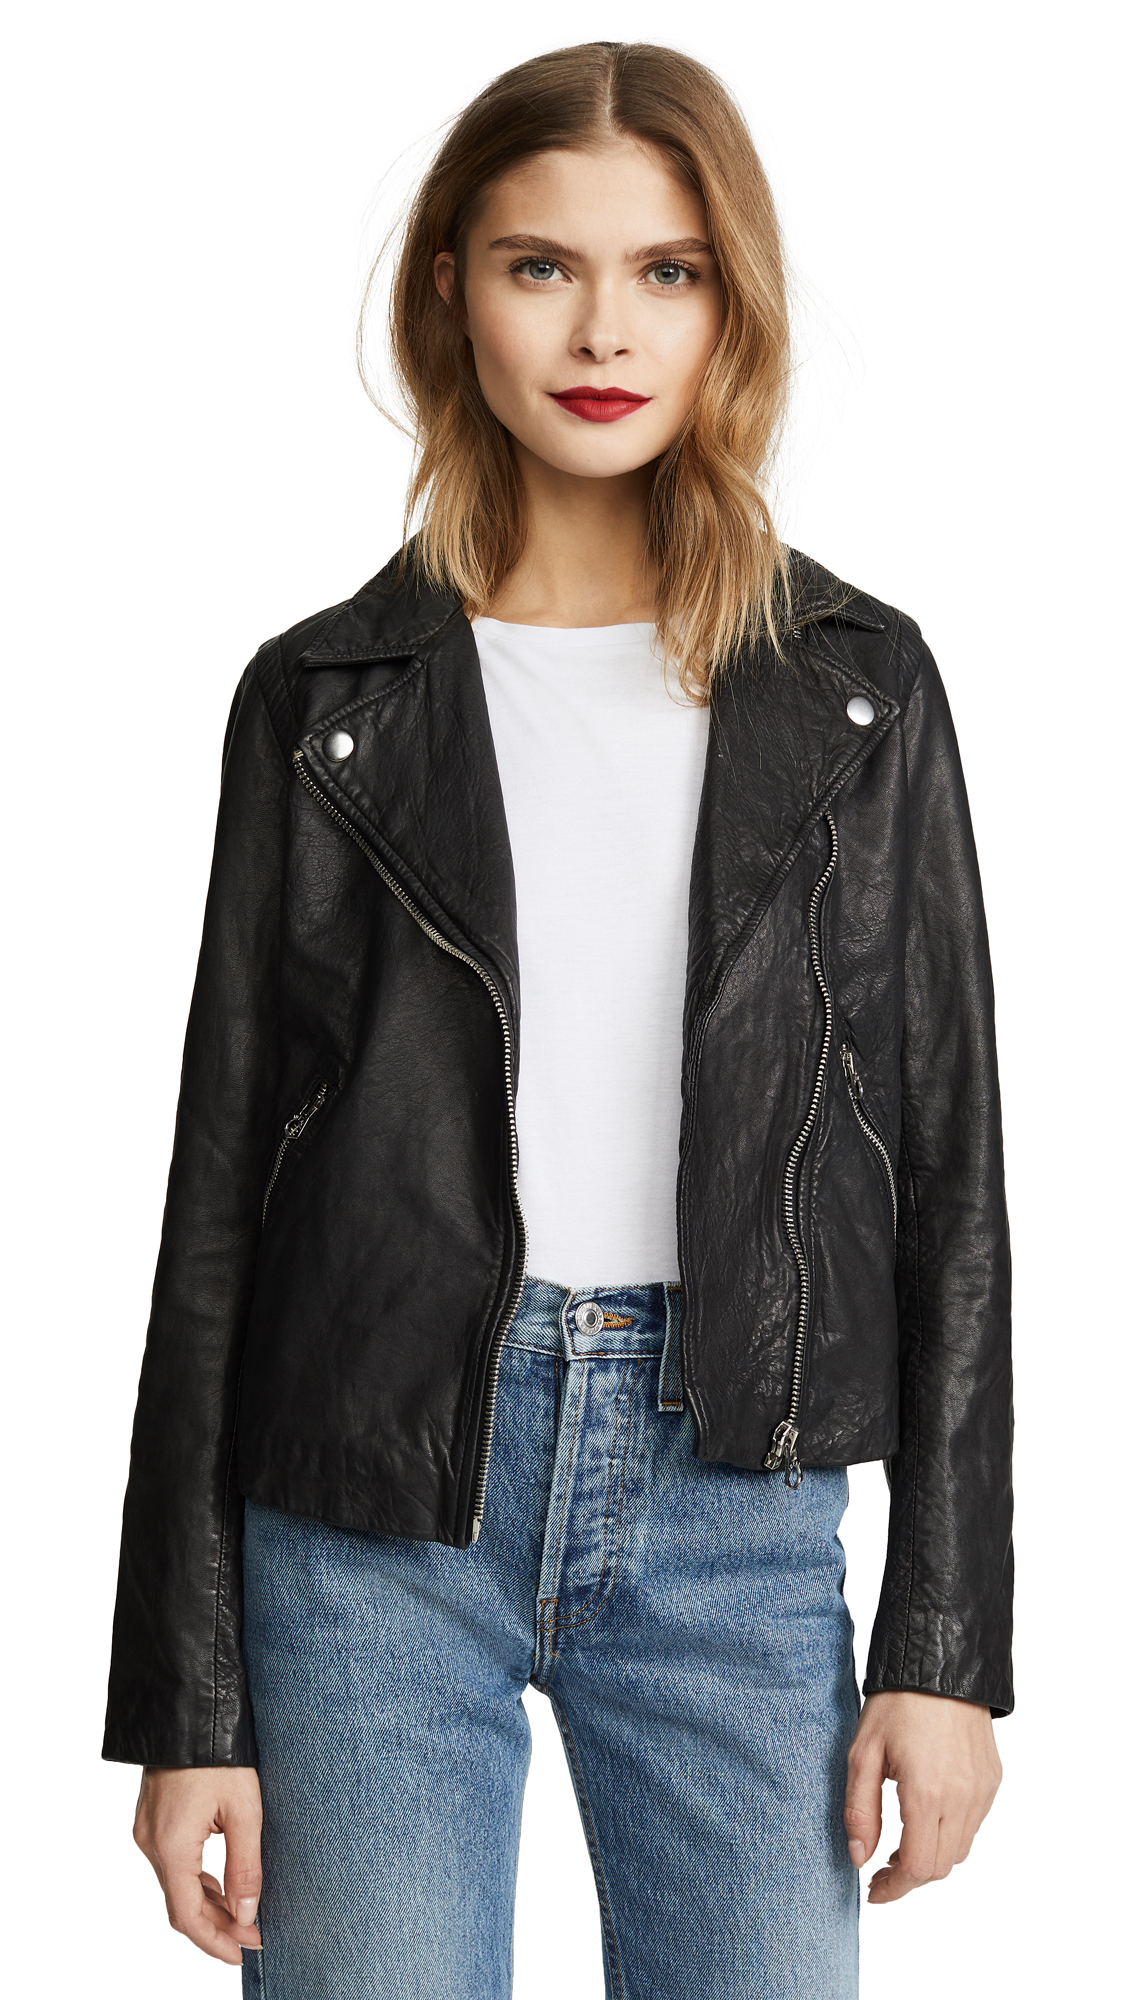 Madewell Washed Leather Motorcycle Jacket - True Black